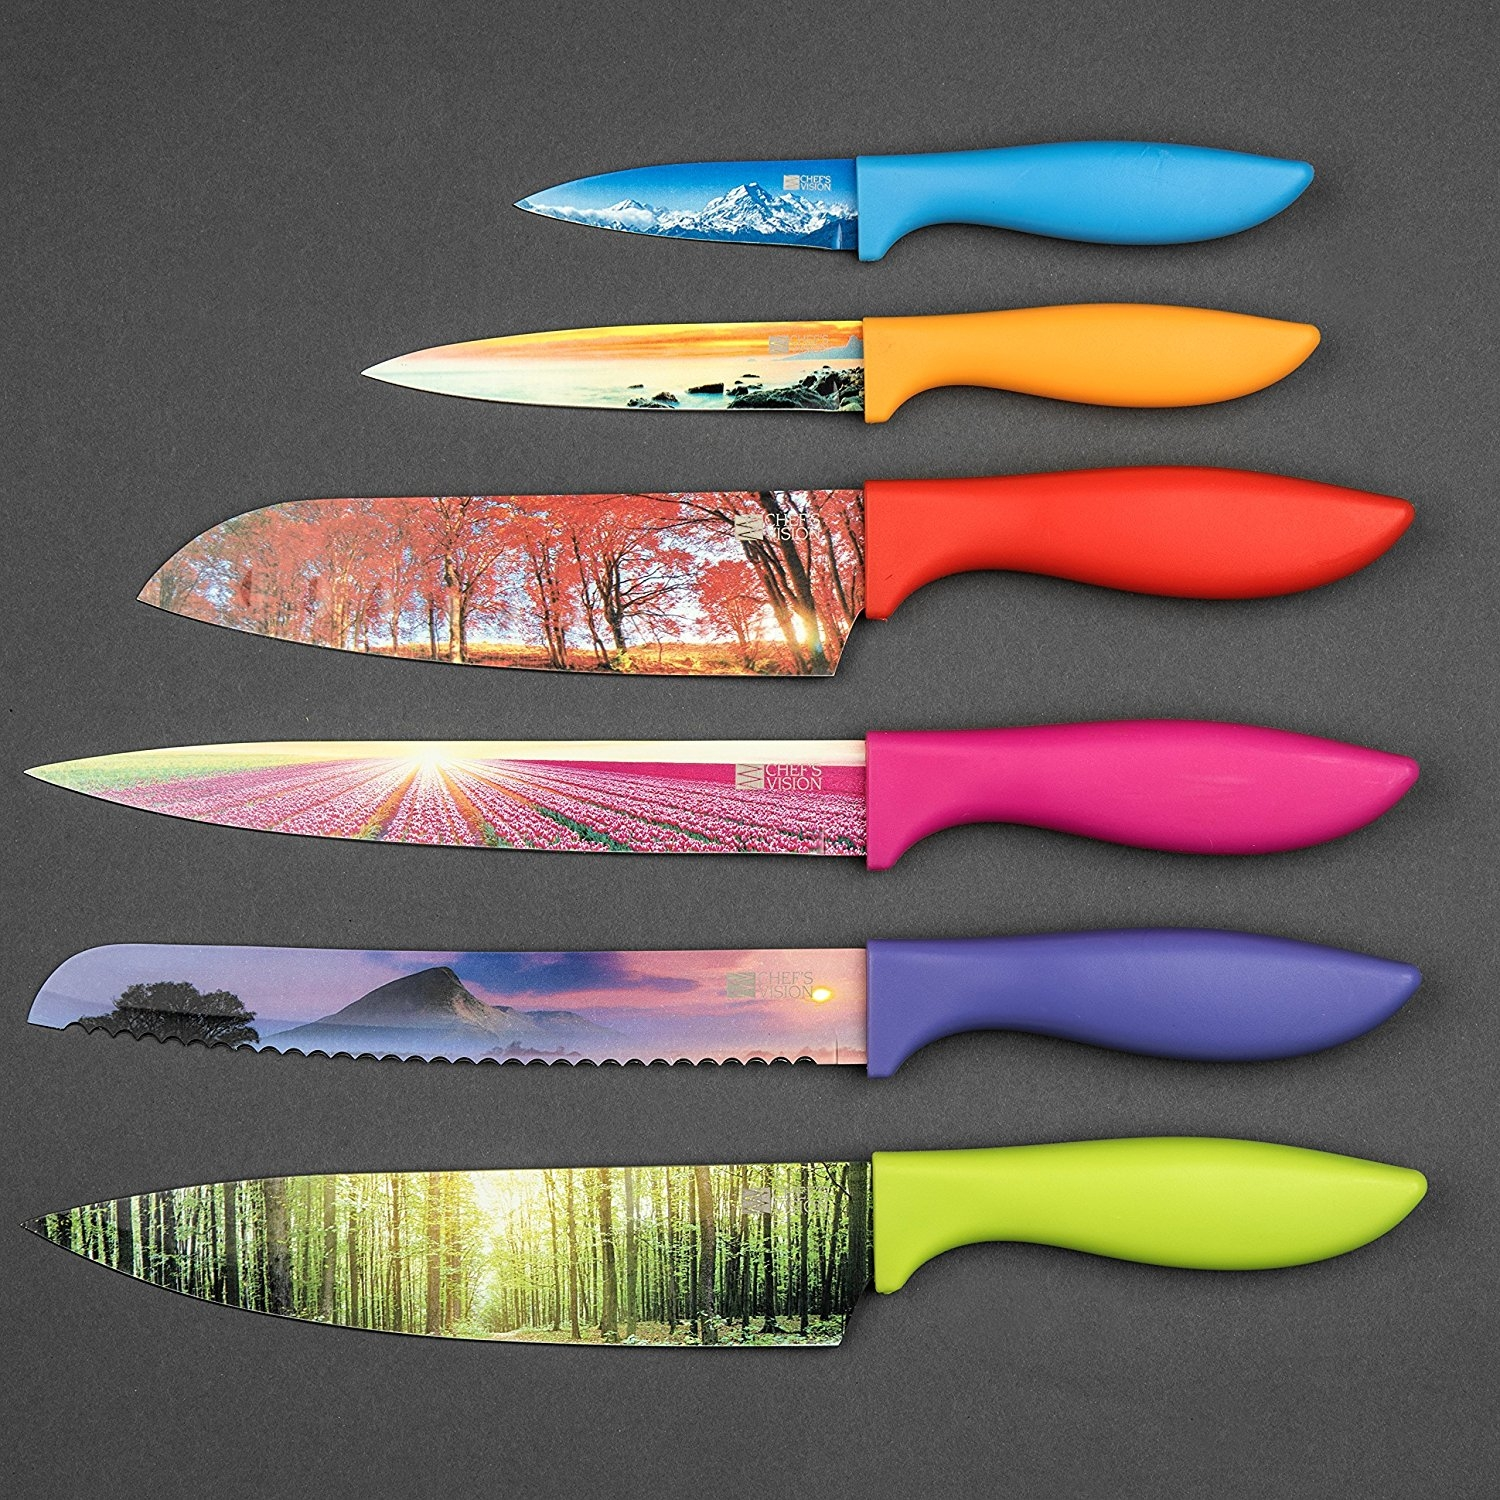 colored kitchen knives victorinox 4 knife set with fibrox handles best 2330